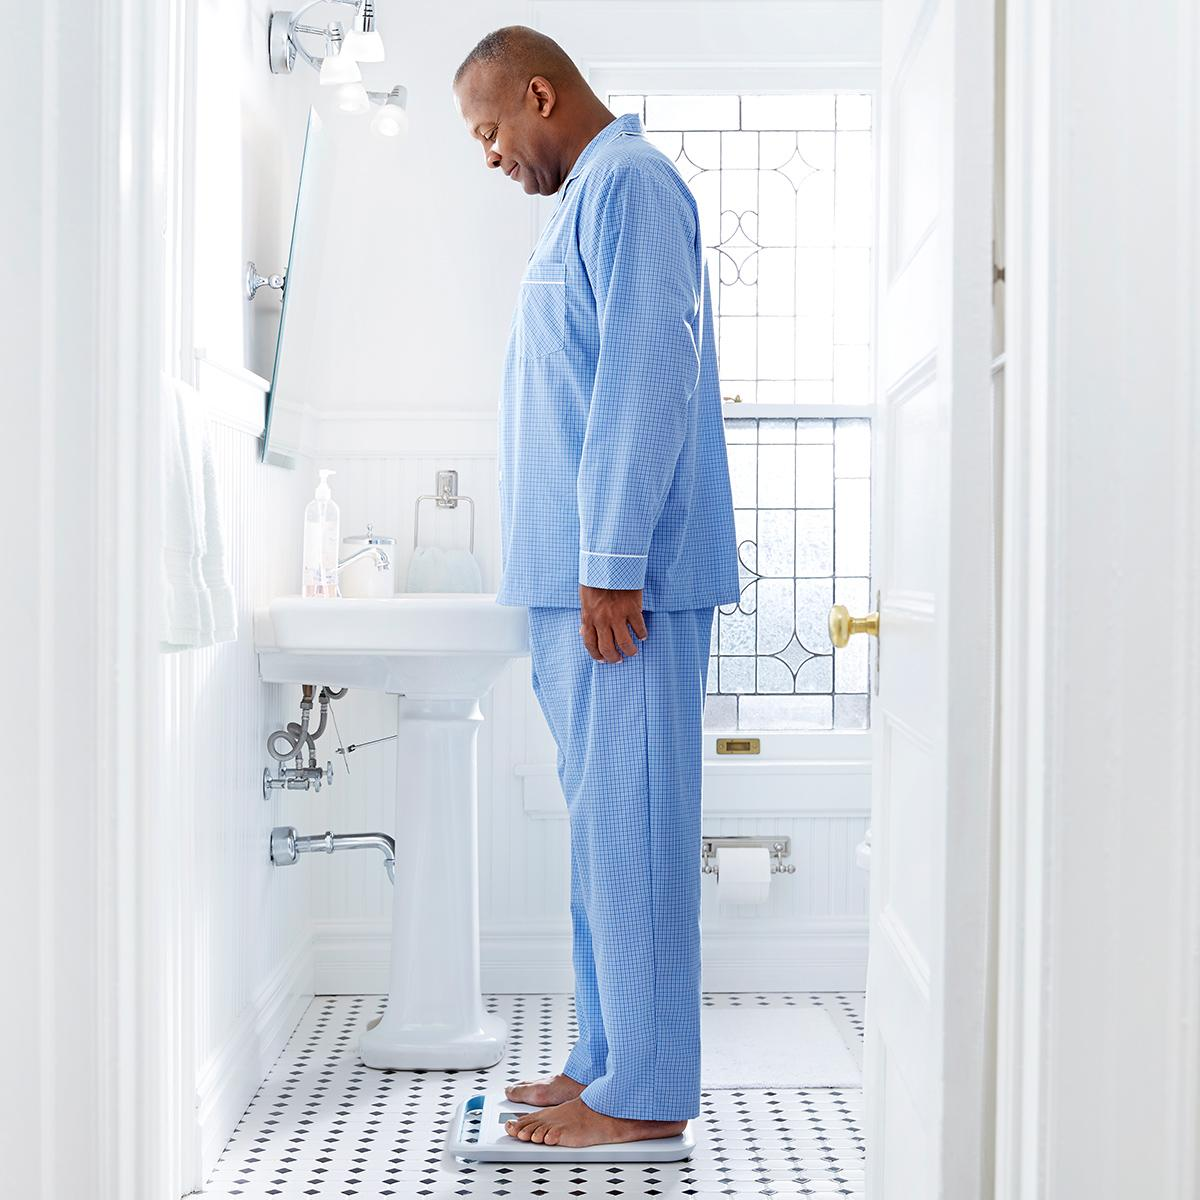 Patient standing on Welch Allyn Home Scale in bathroom